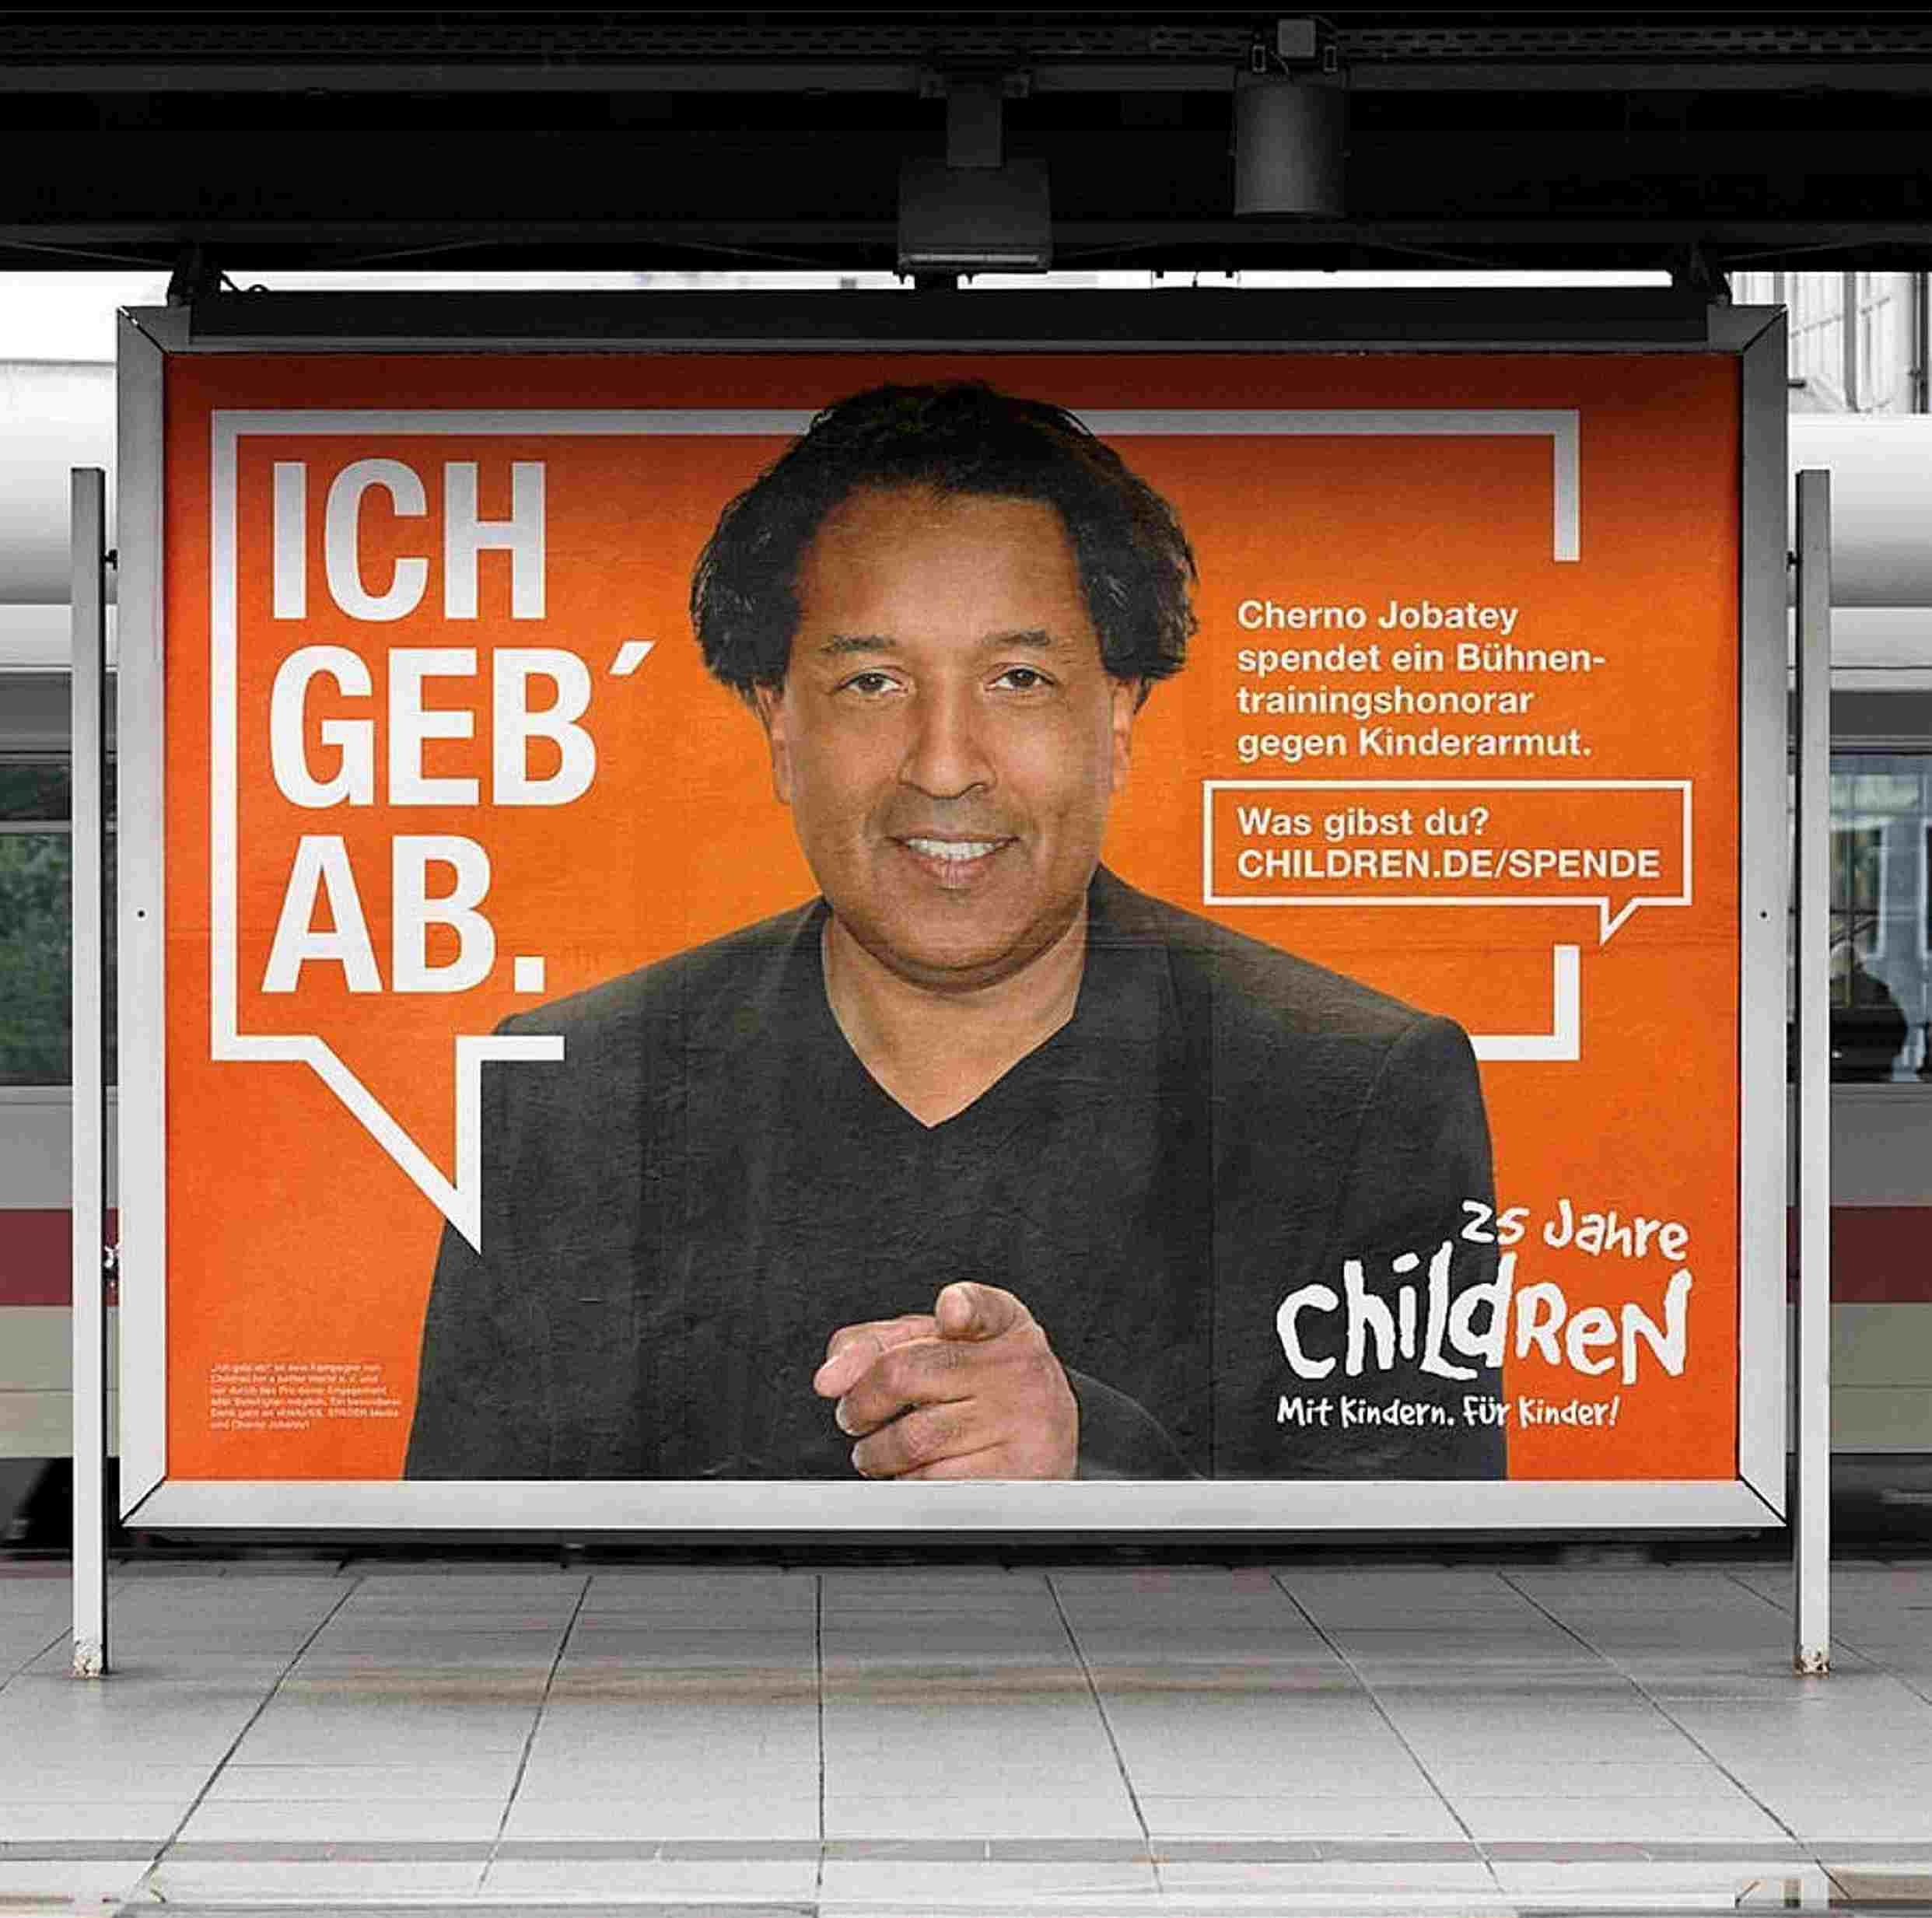 ch geb ab! Kampagne von Children for a better World e.V. mit Cherno Jobatey